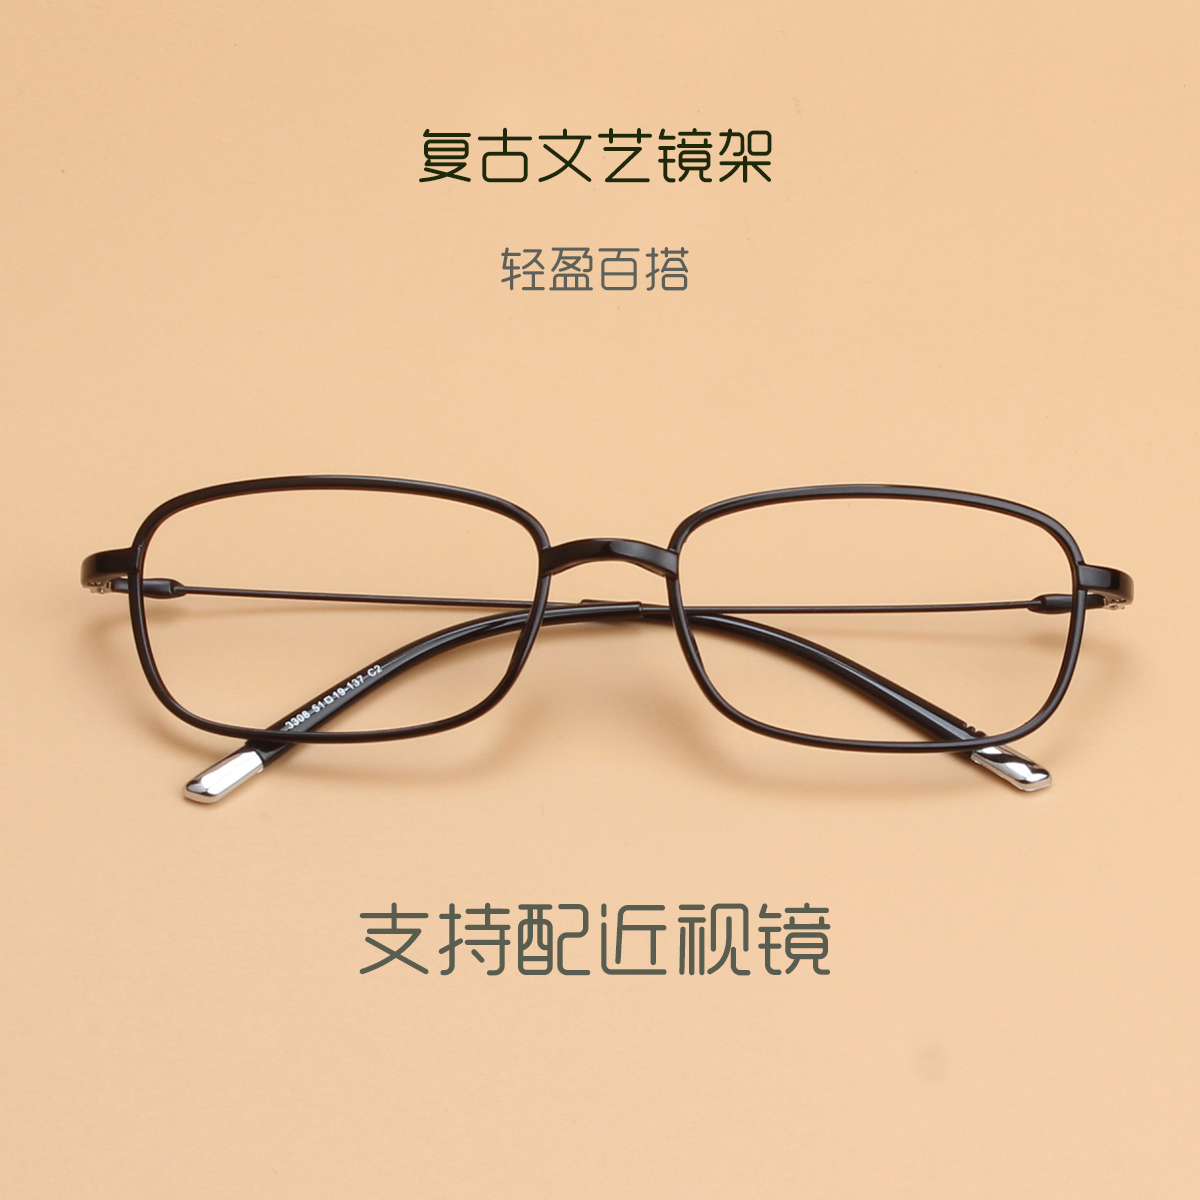 c7520f6cda61 Get Quotations · Ultralight tr90 glasses frame female models korean tidal  box 1 theatrical spectacle frames male eye box